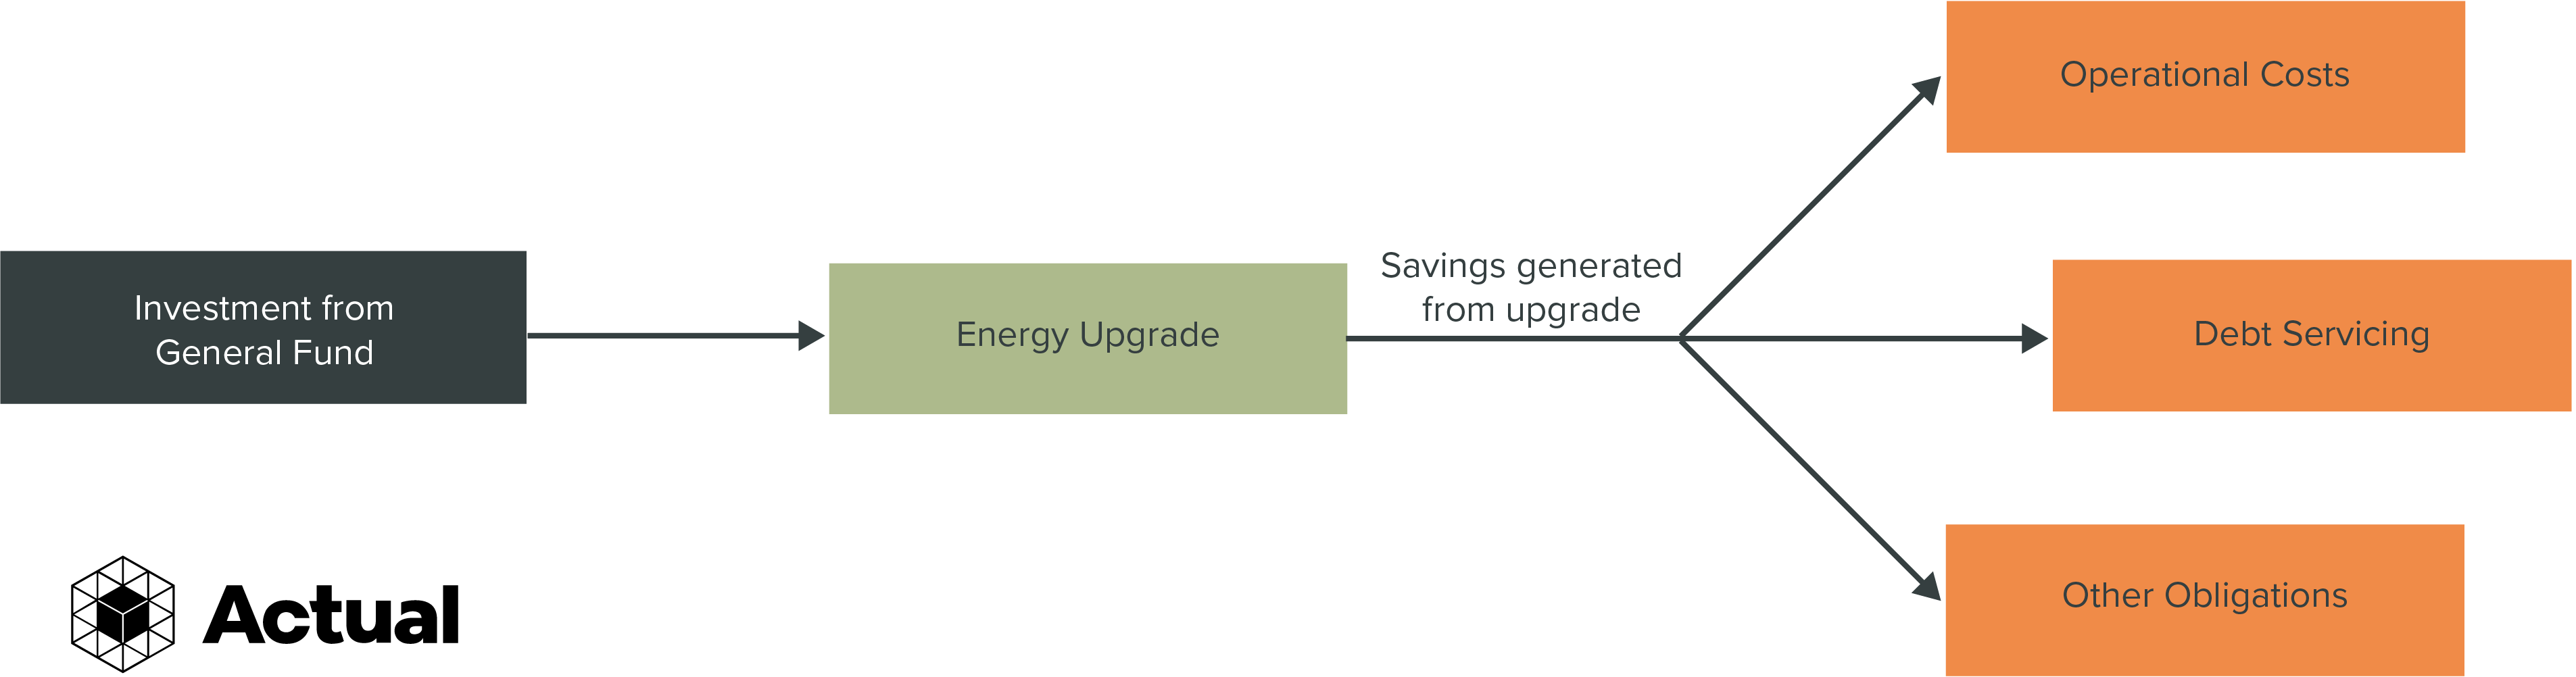 A flowchart which shows how small energy upgrades are typically financed. At the left is a block showing the general fund. An arrow connects it to a second block, the energy upgrade. There is a line from the right side of the energy upgrade which branches into three arrows, showing that the saved money can be spent on operational costs, debts, and other obligations.